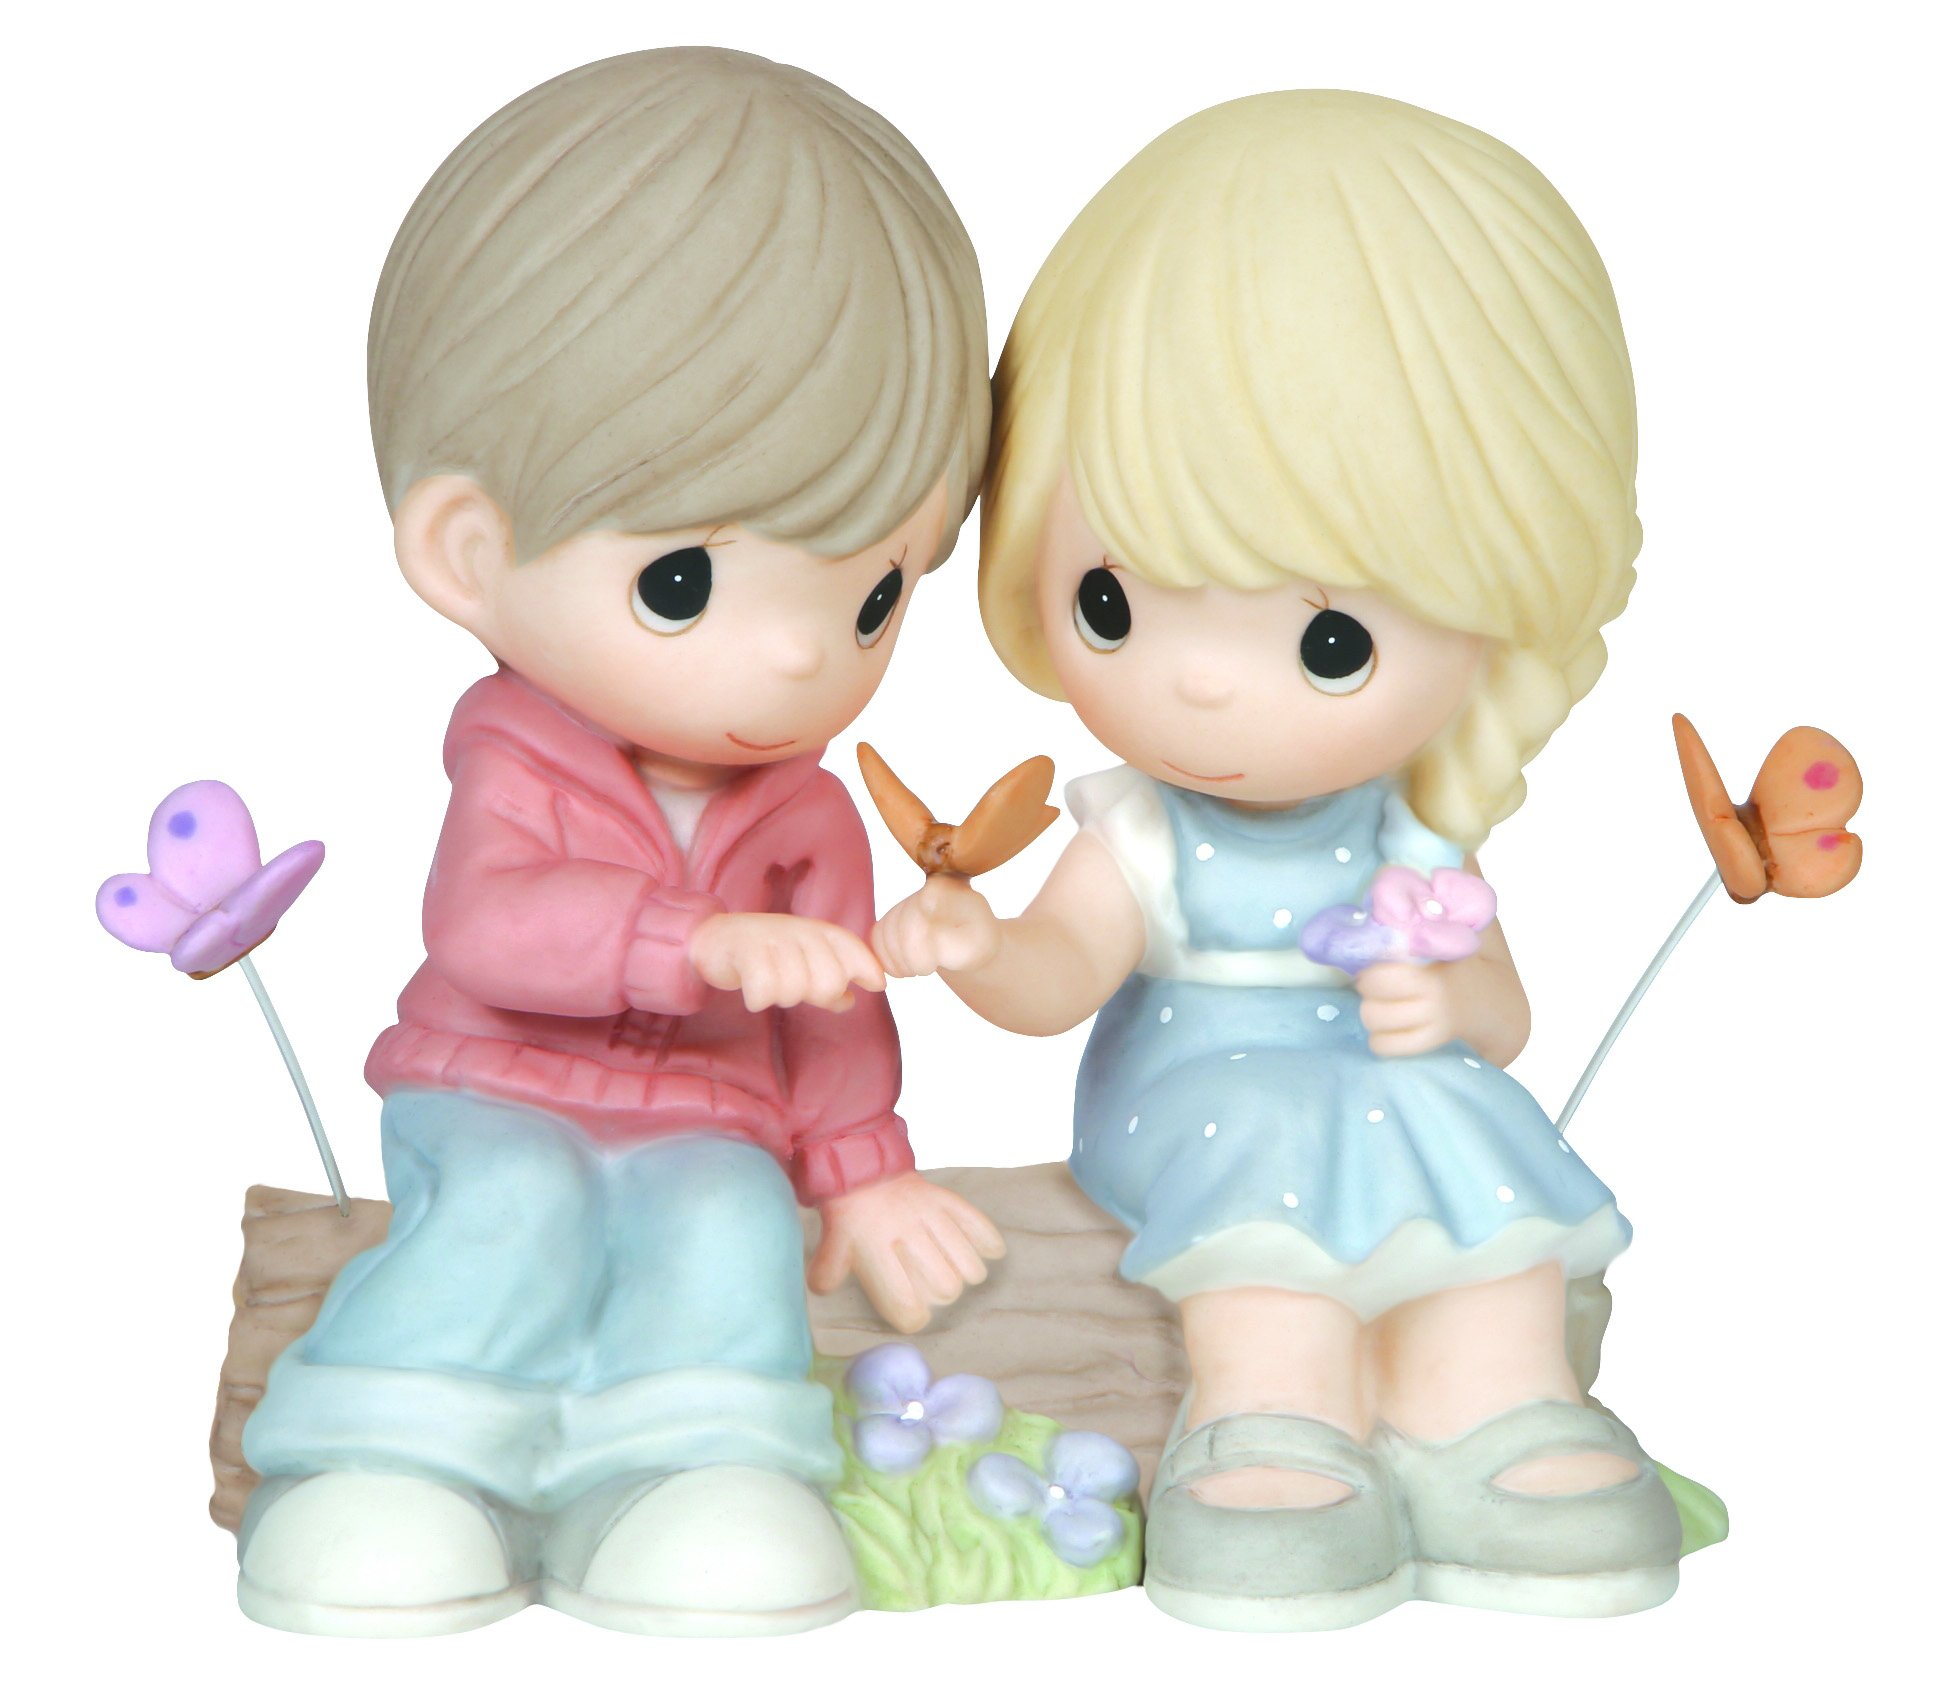 Precious Moments,  You Give Me Butterflies, Bisque Porcelain Figurine, 144010